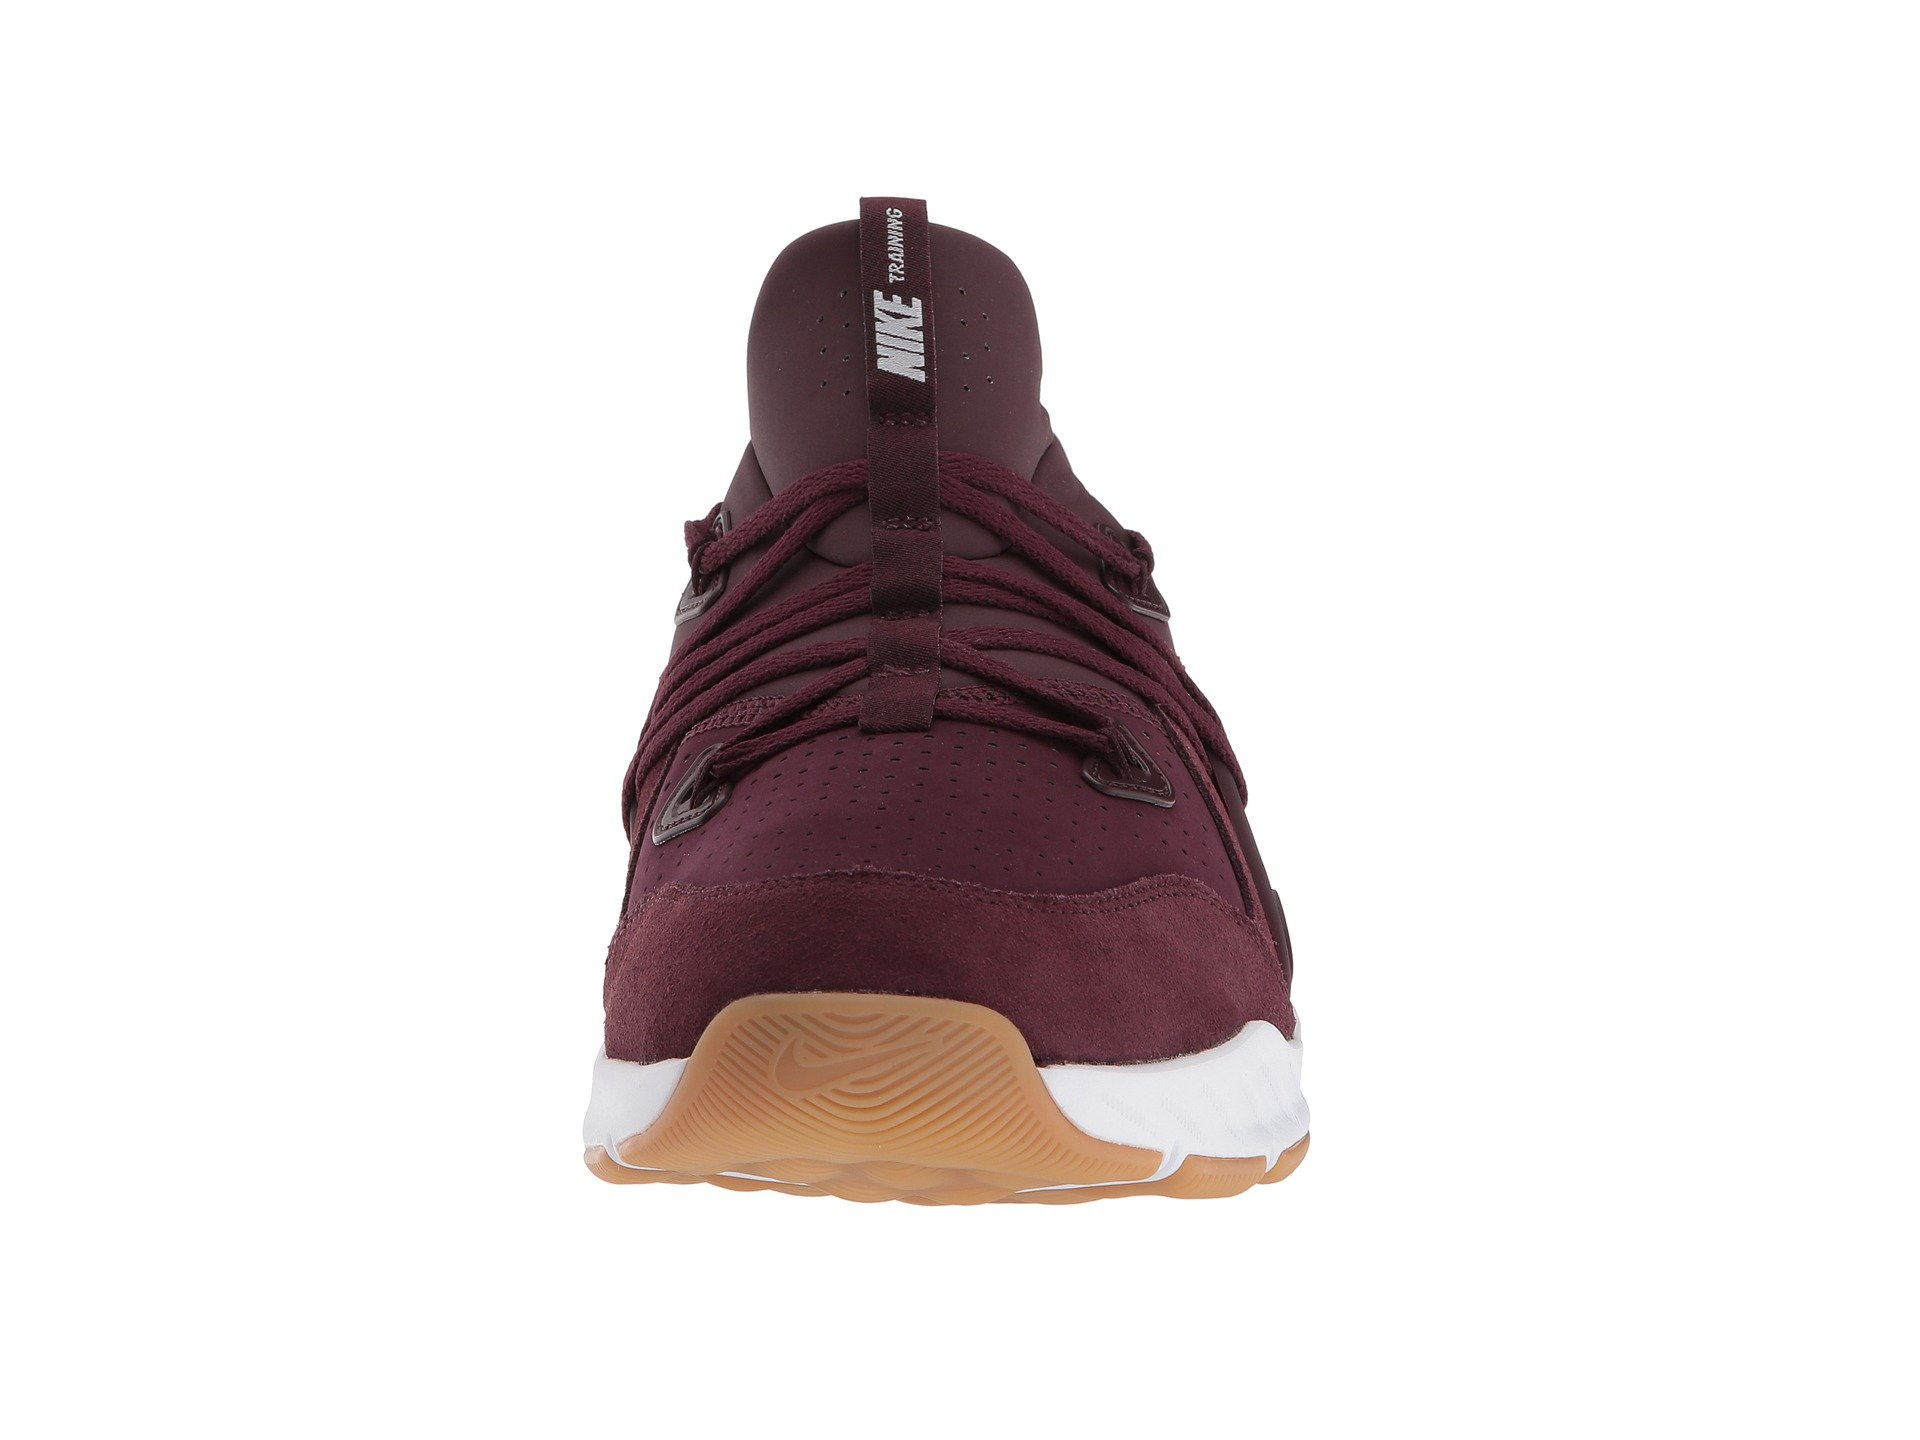 reputable site 6b237 15eb8 nike roshe 1. 5 inch heel. Another benefit is that the mesh material wicks  away perspiration from your feet as you run. Material: The Skechers work  shoes ...